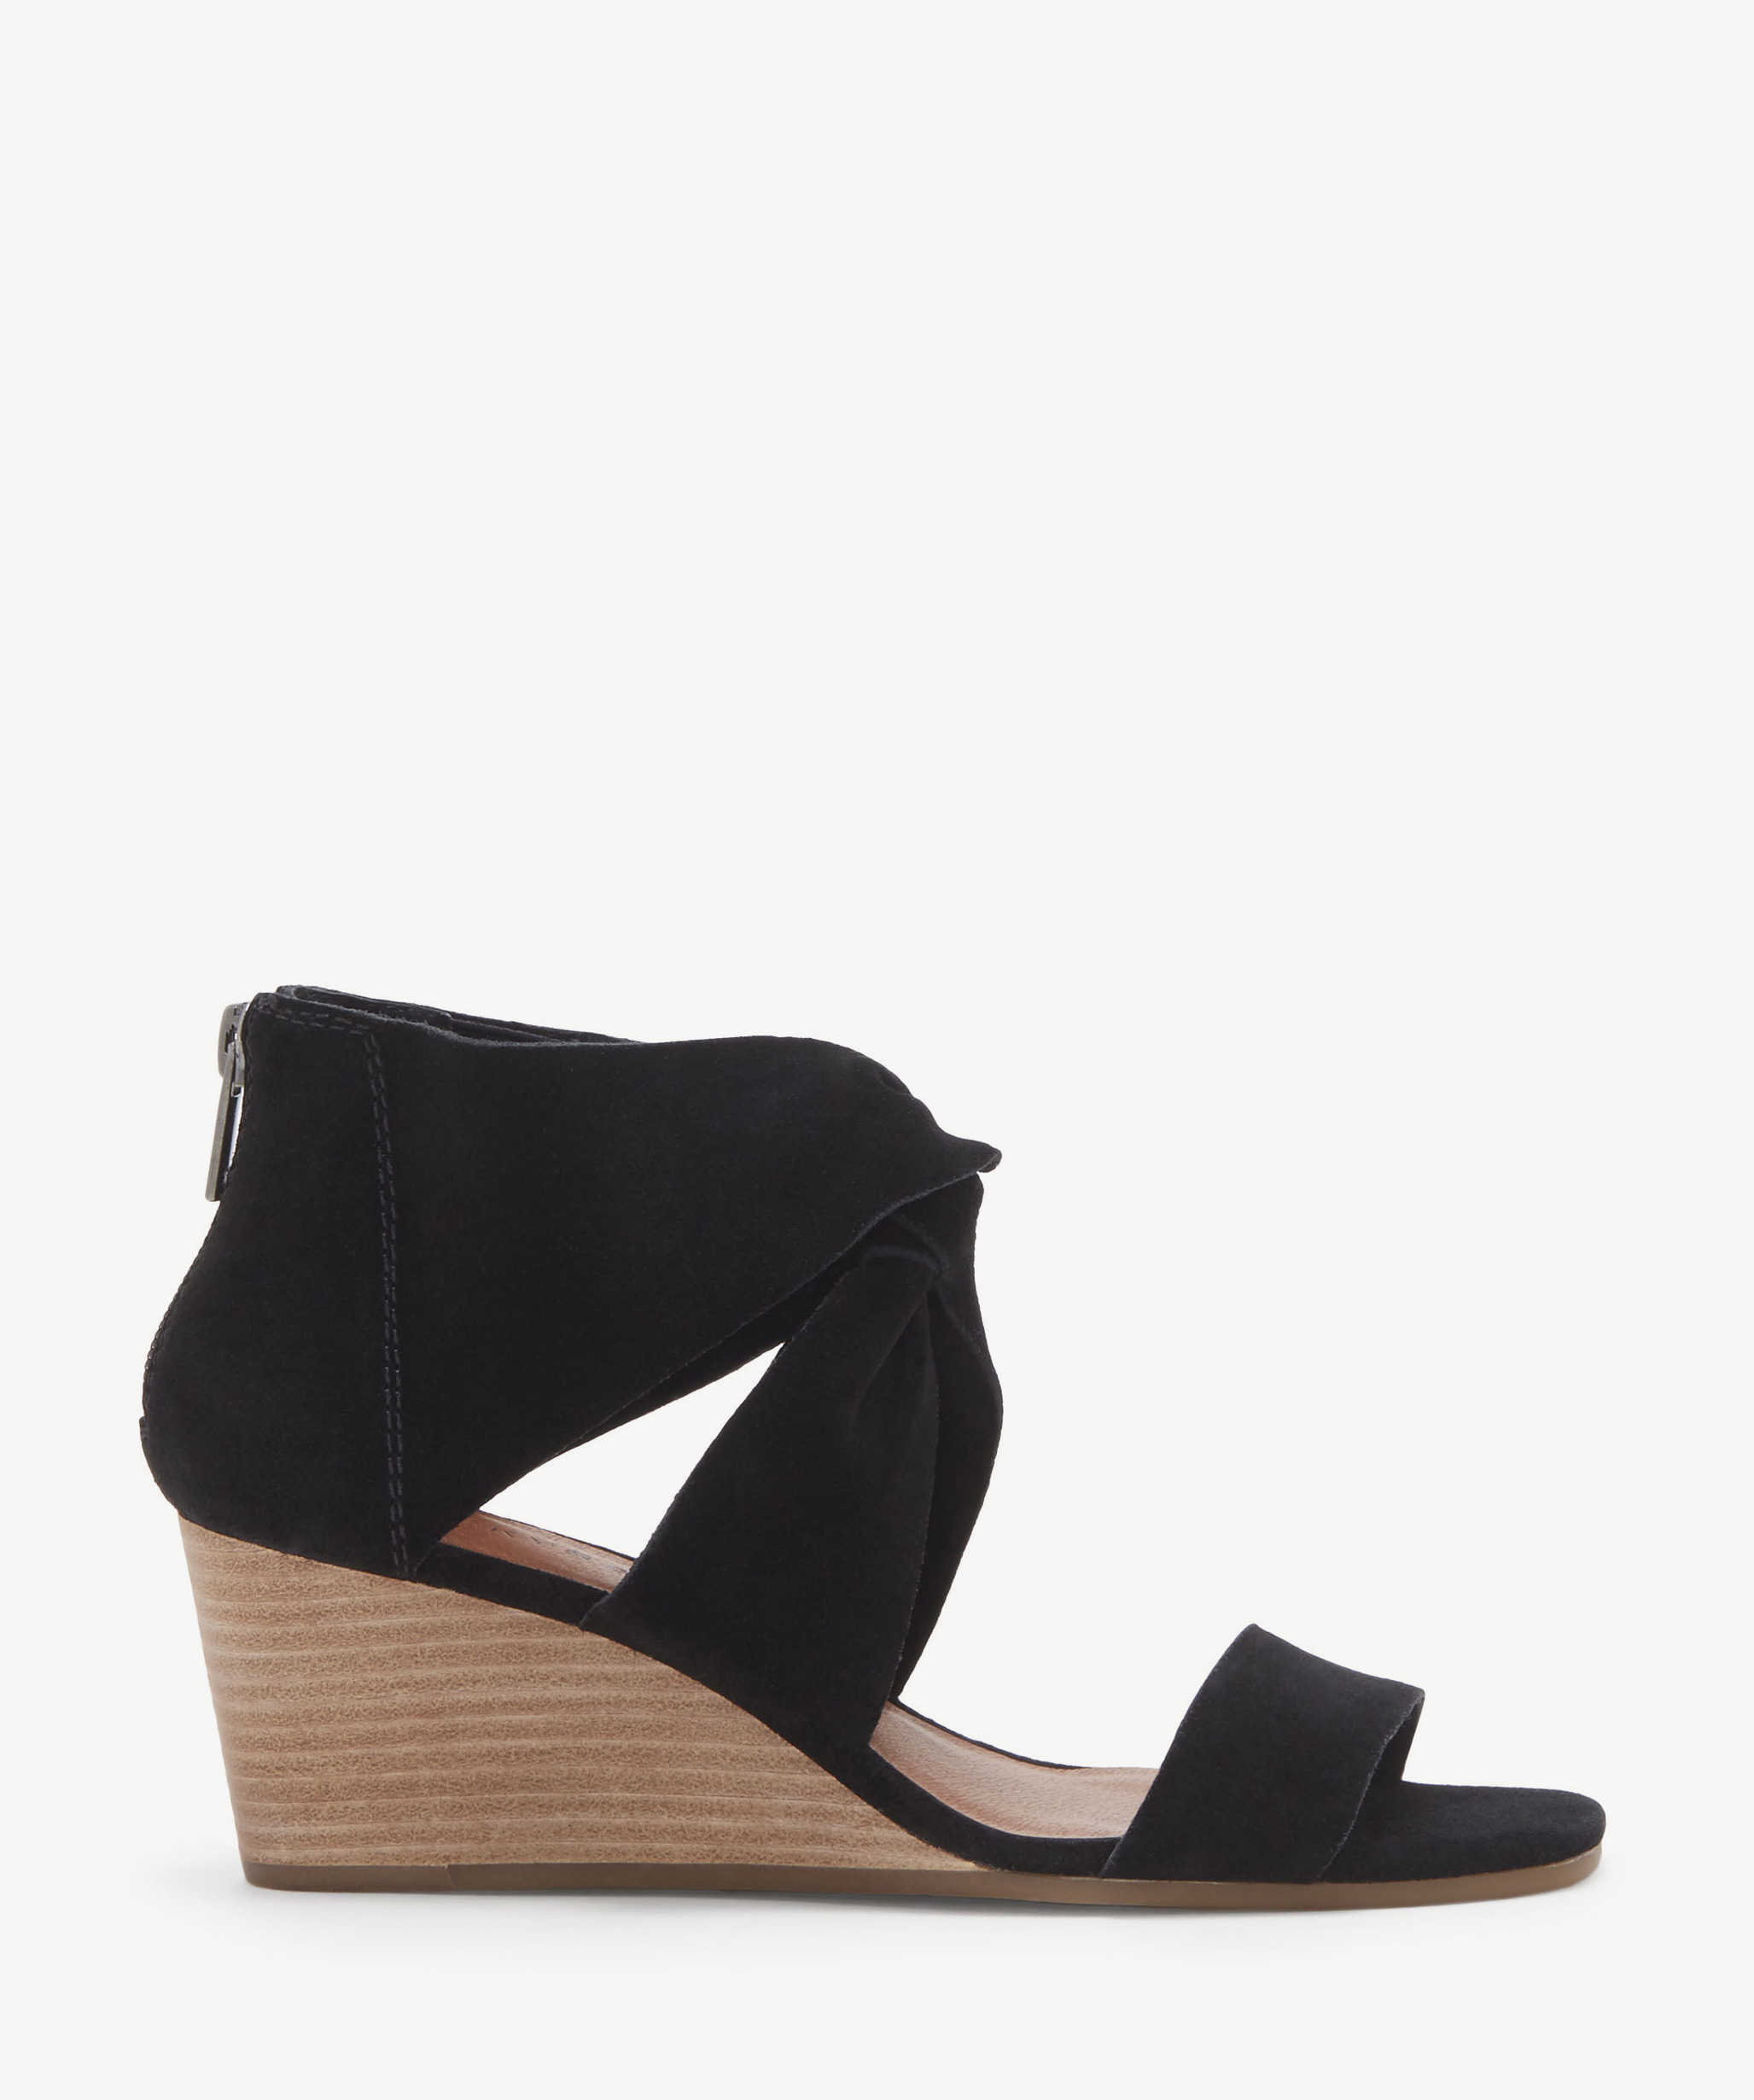 32b50ab34e Lucky Brand Women's Tammanee Knotted Wedges Black | Size 8.5 Suede From  Sole Society